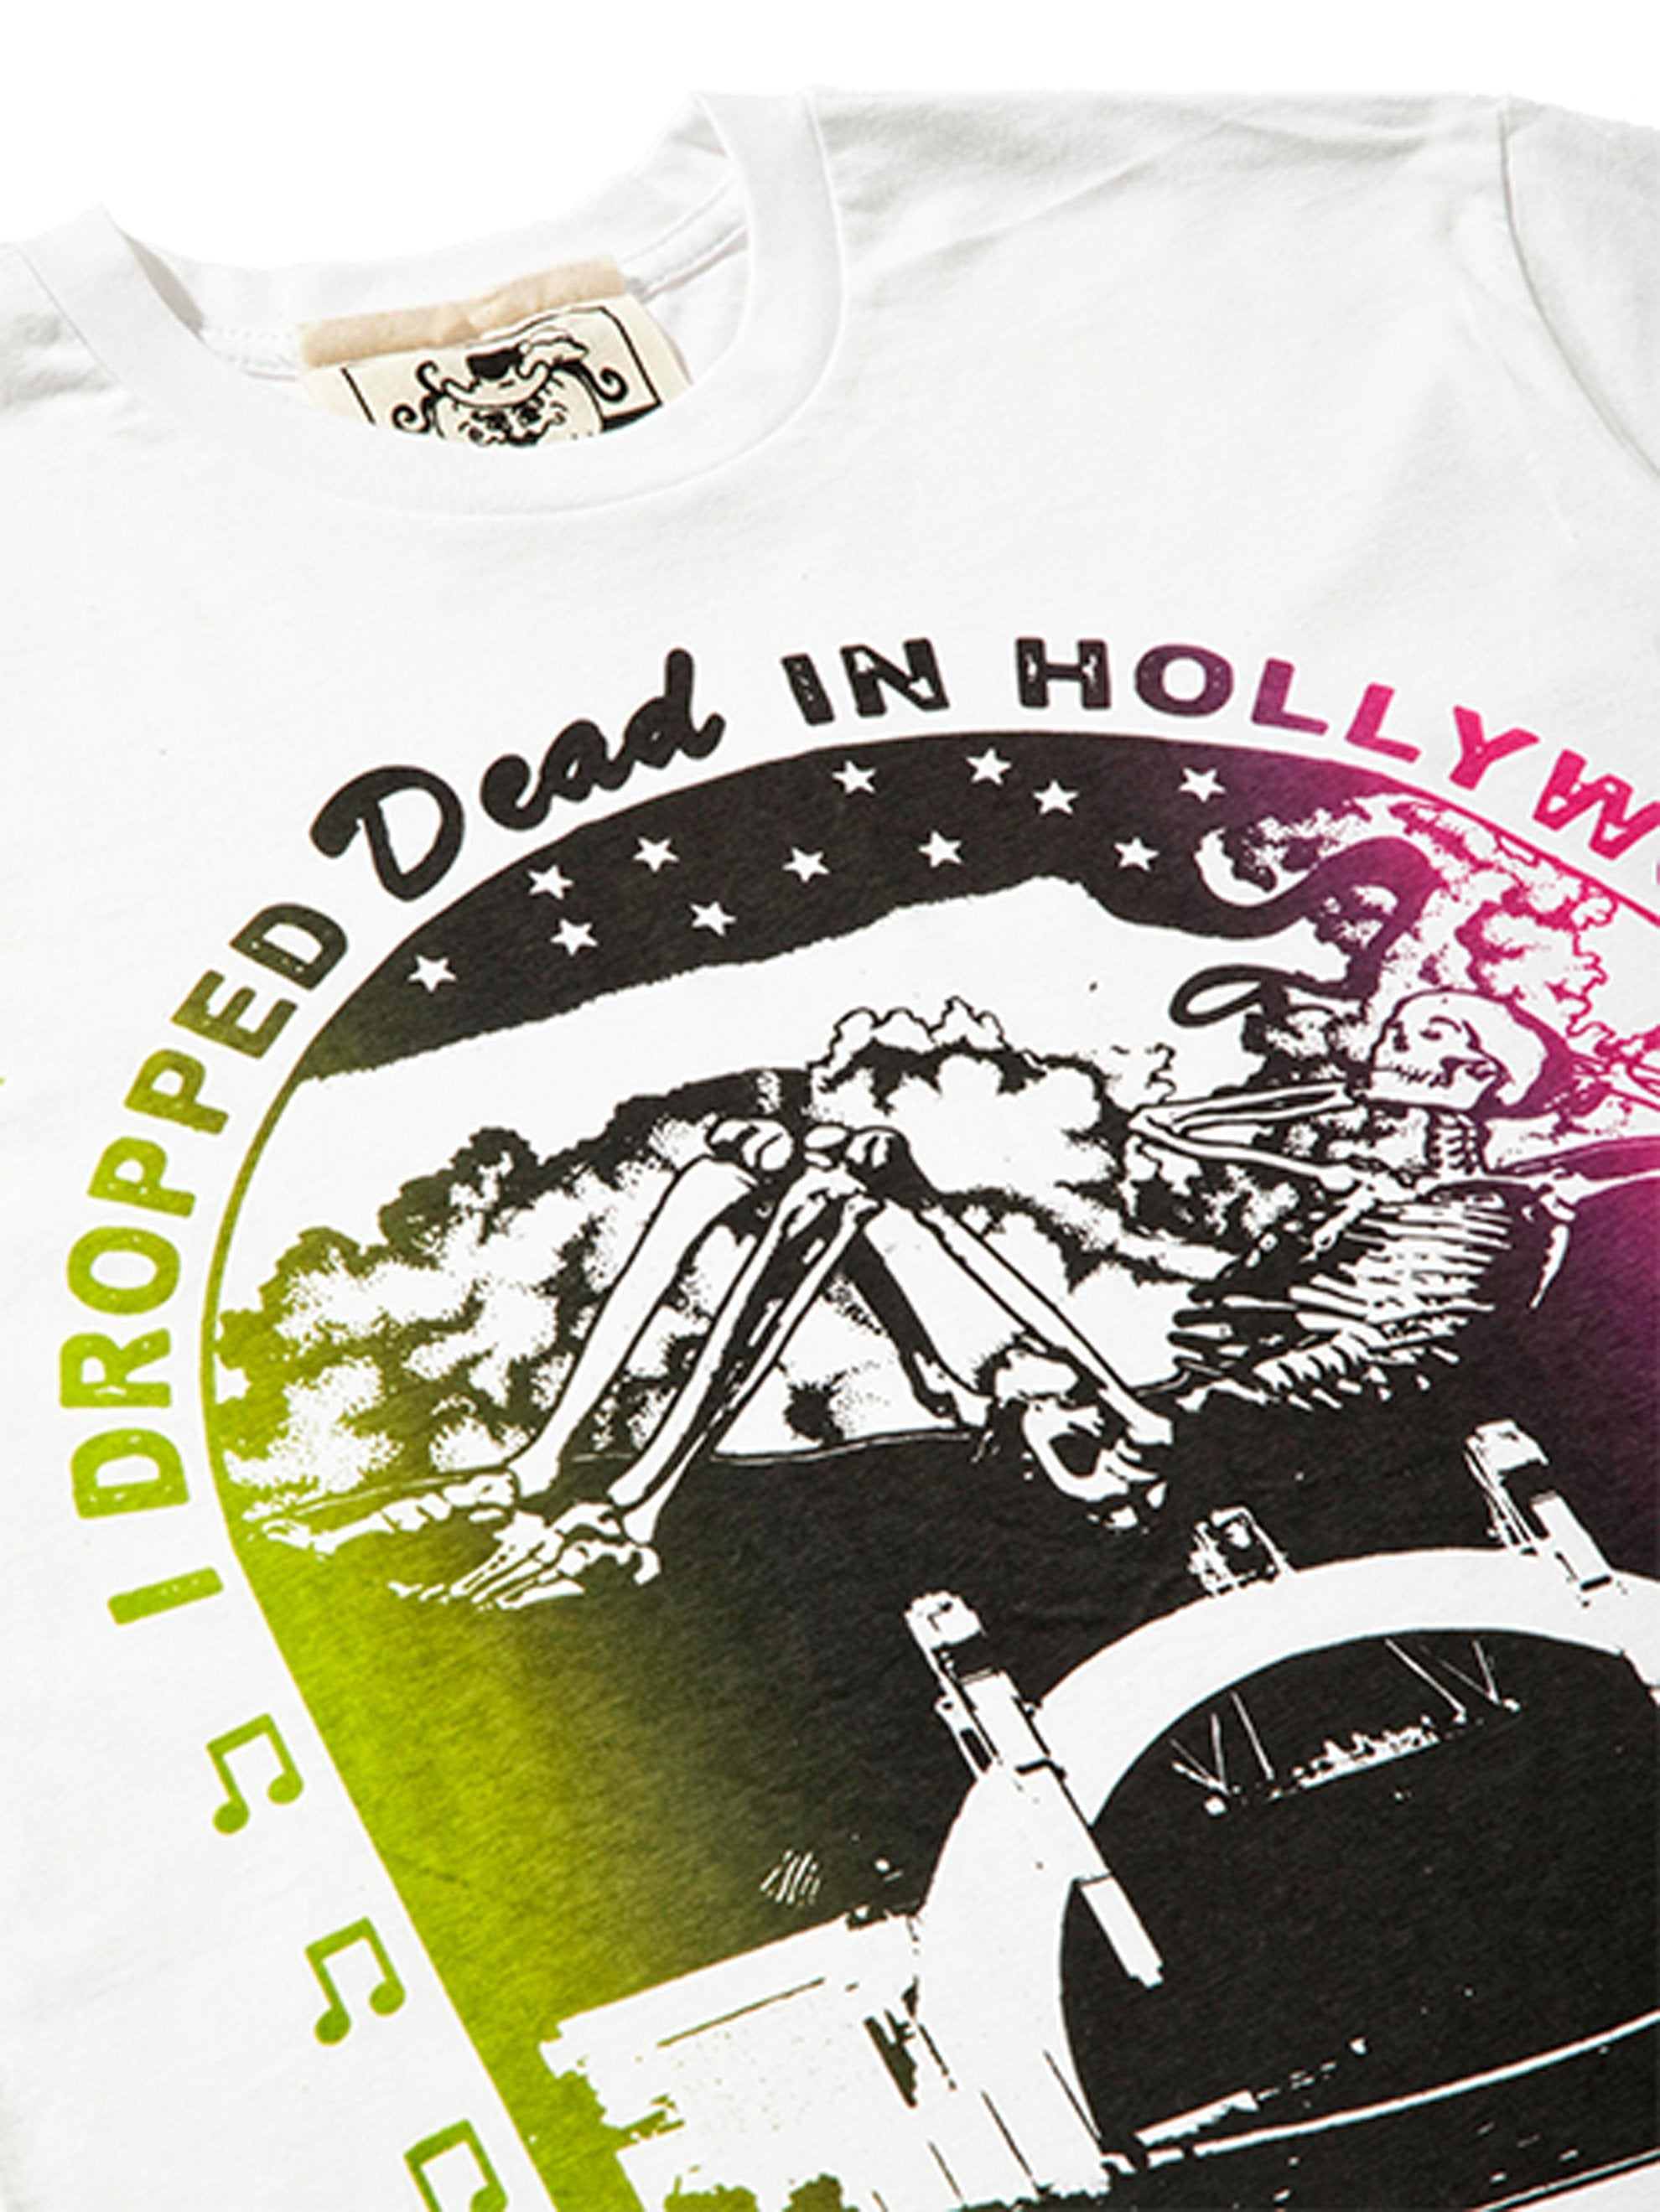 Dropped Dead in Hollywood T-Shirt